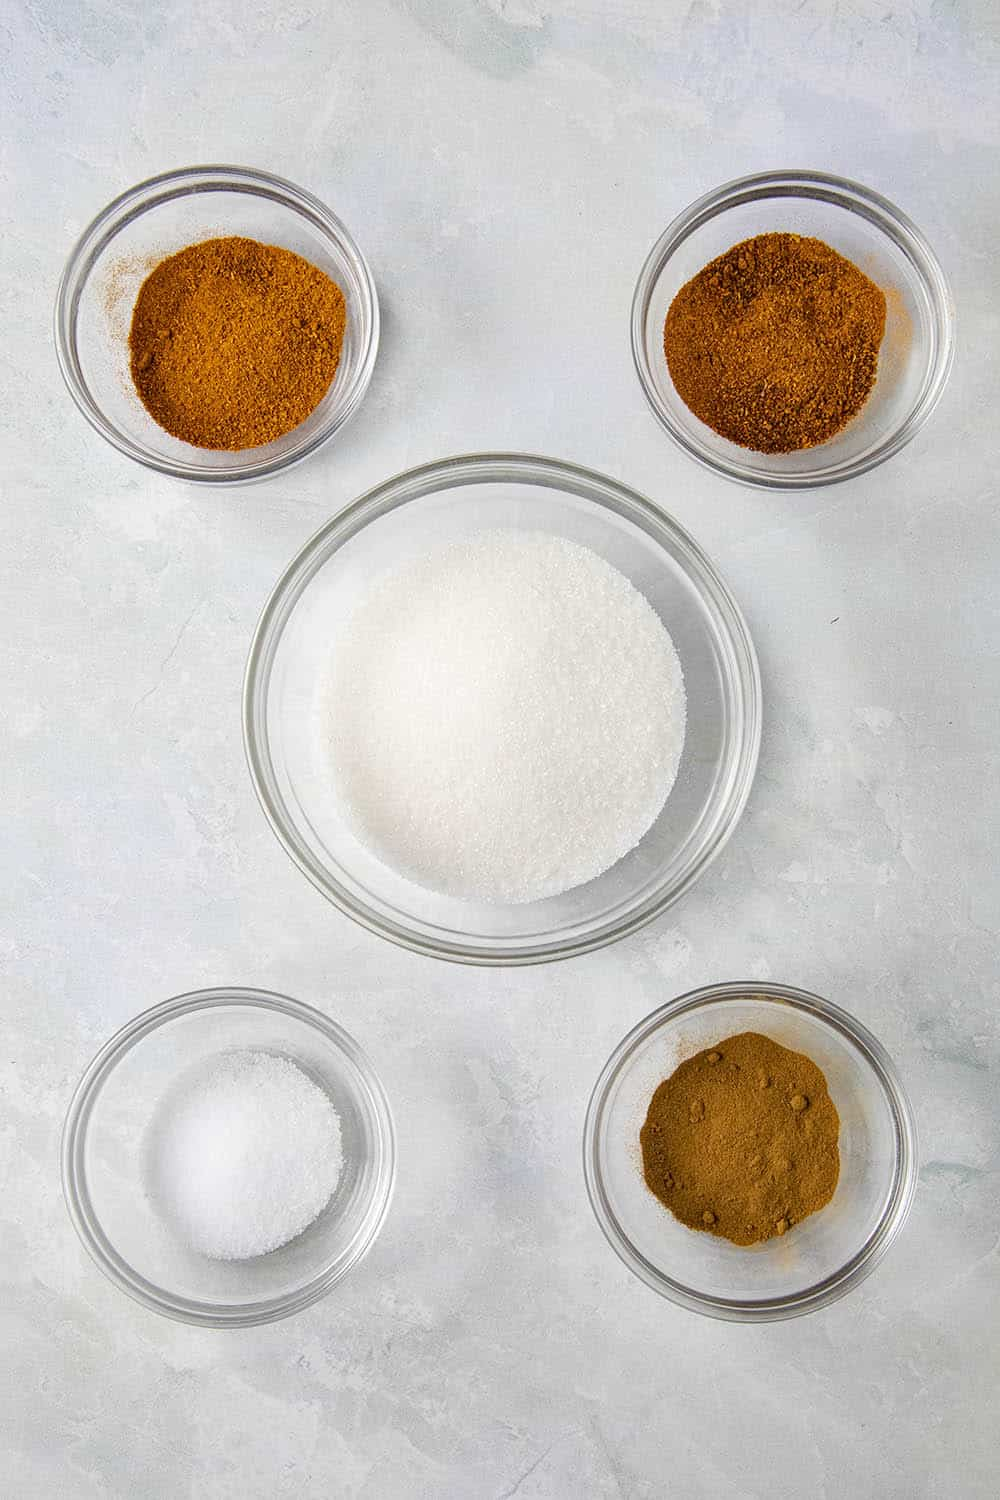 Seasonings for making spicy spiced nuts